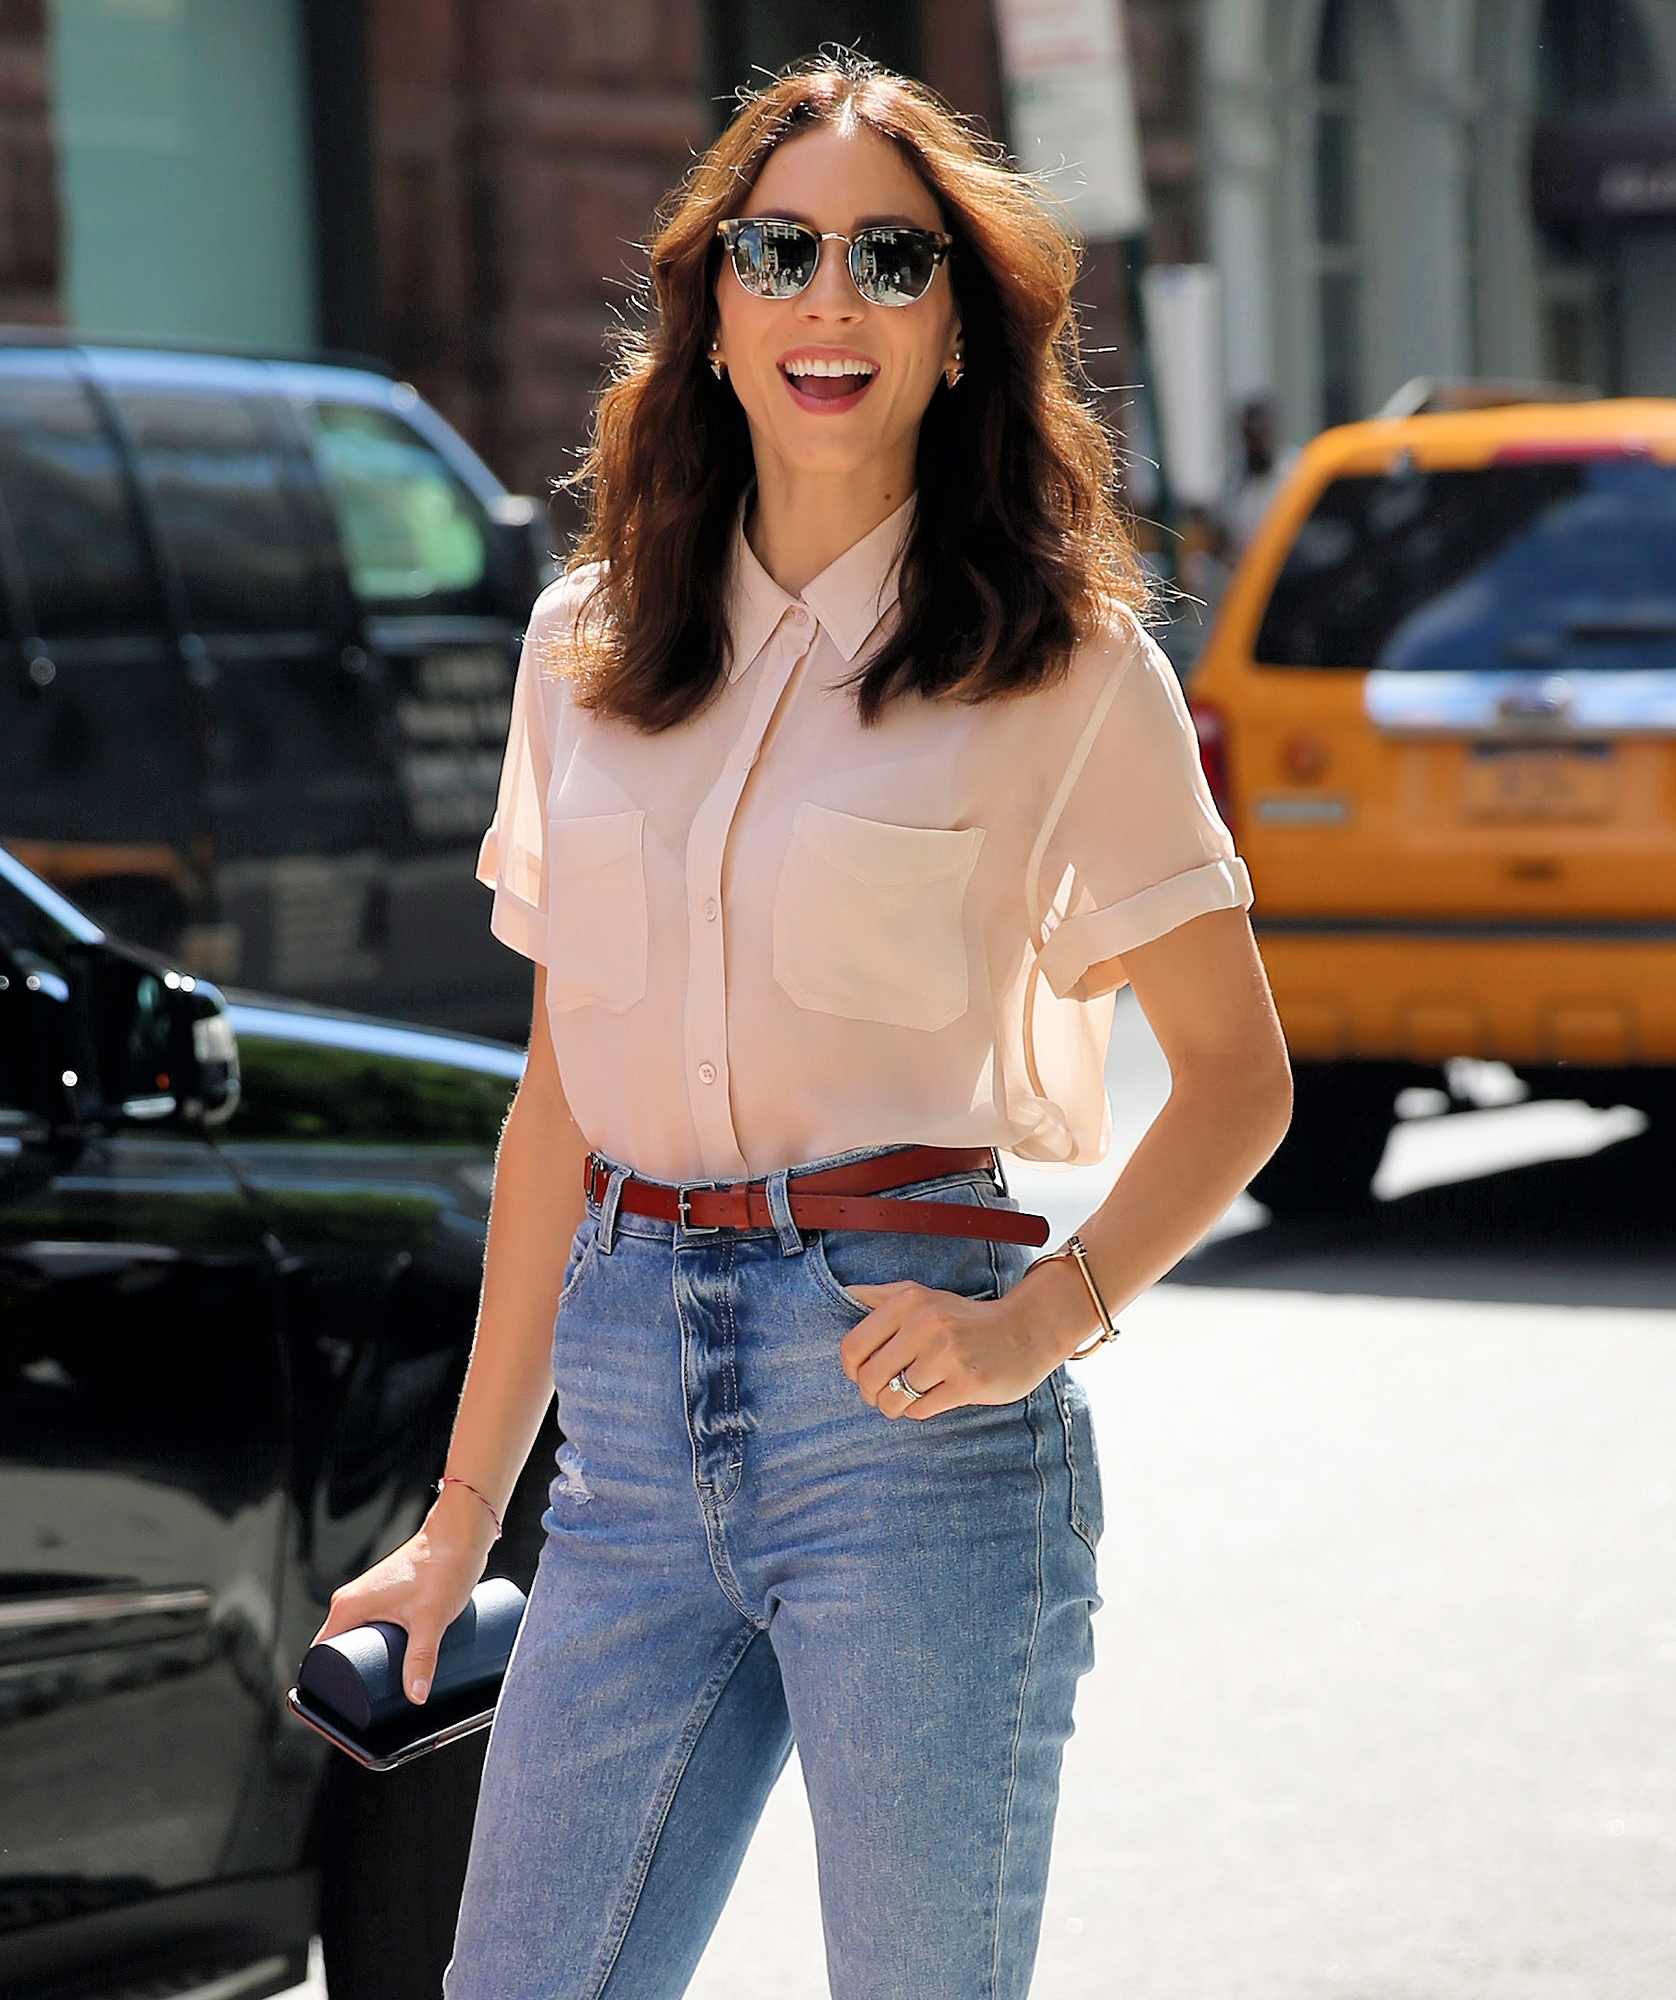 Actress Troian Bellisario arrives at AOL Build Series in New York City